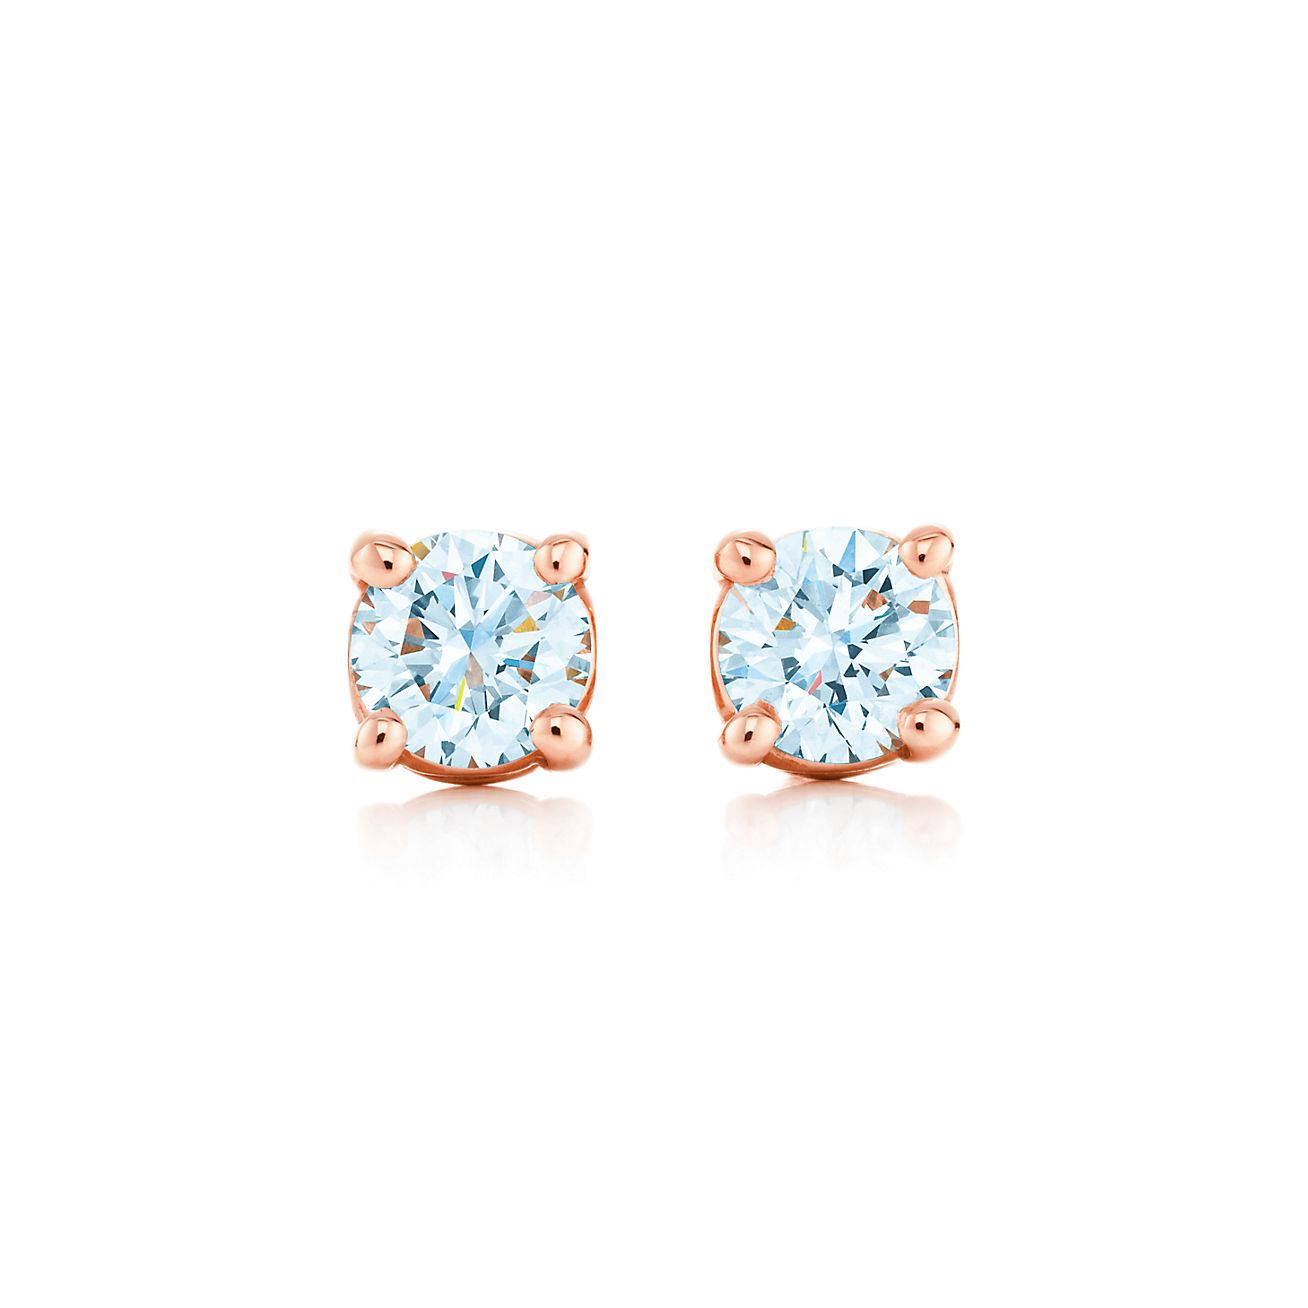 Tiffany Solitaire Diamond Earrings